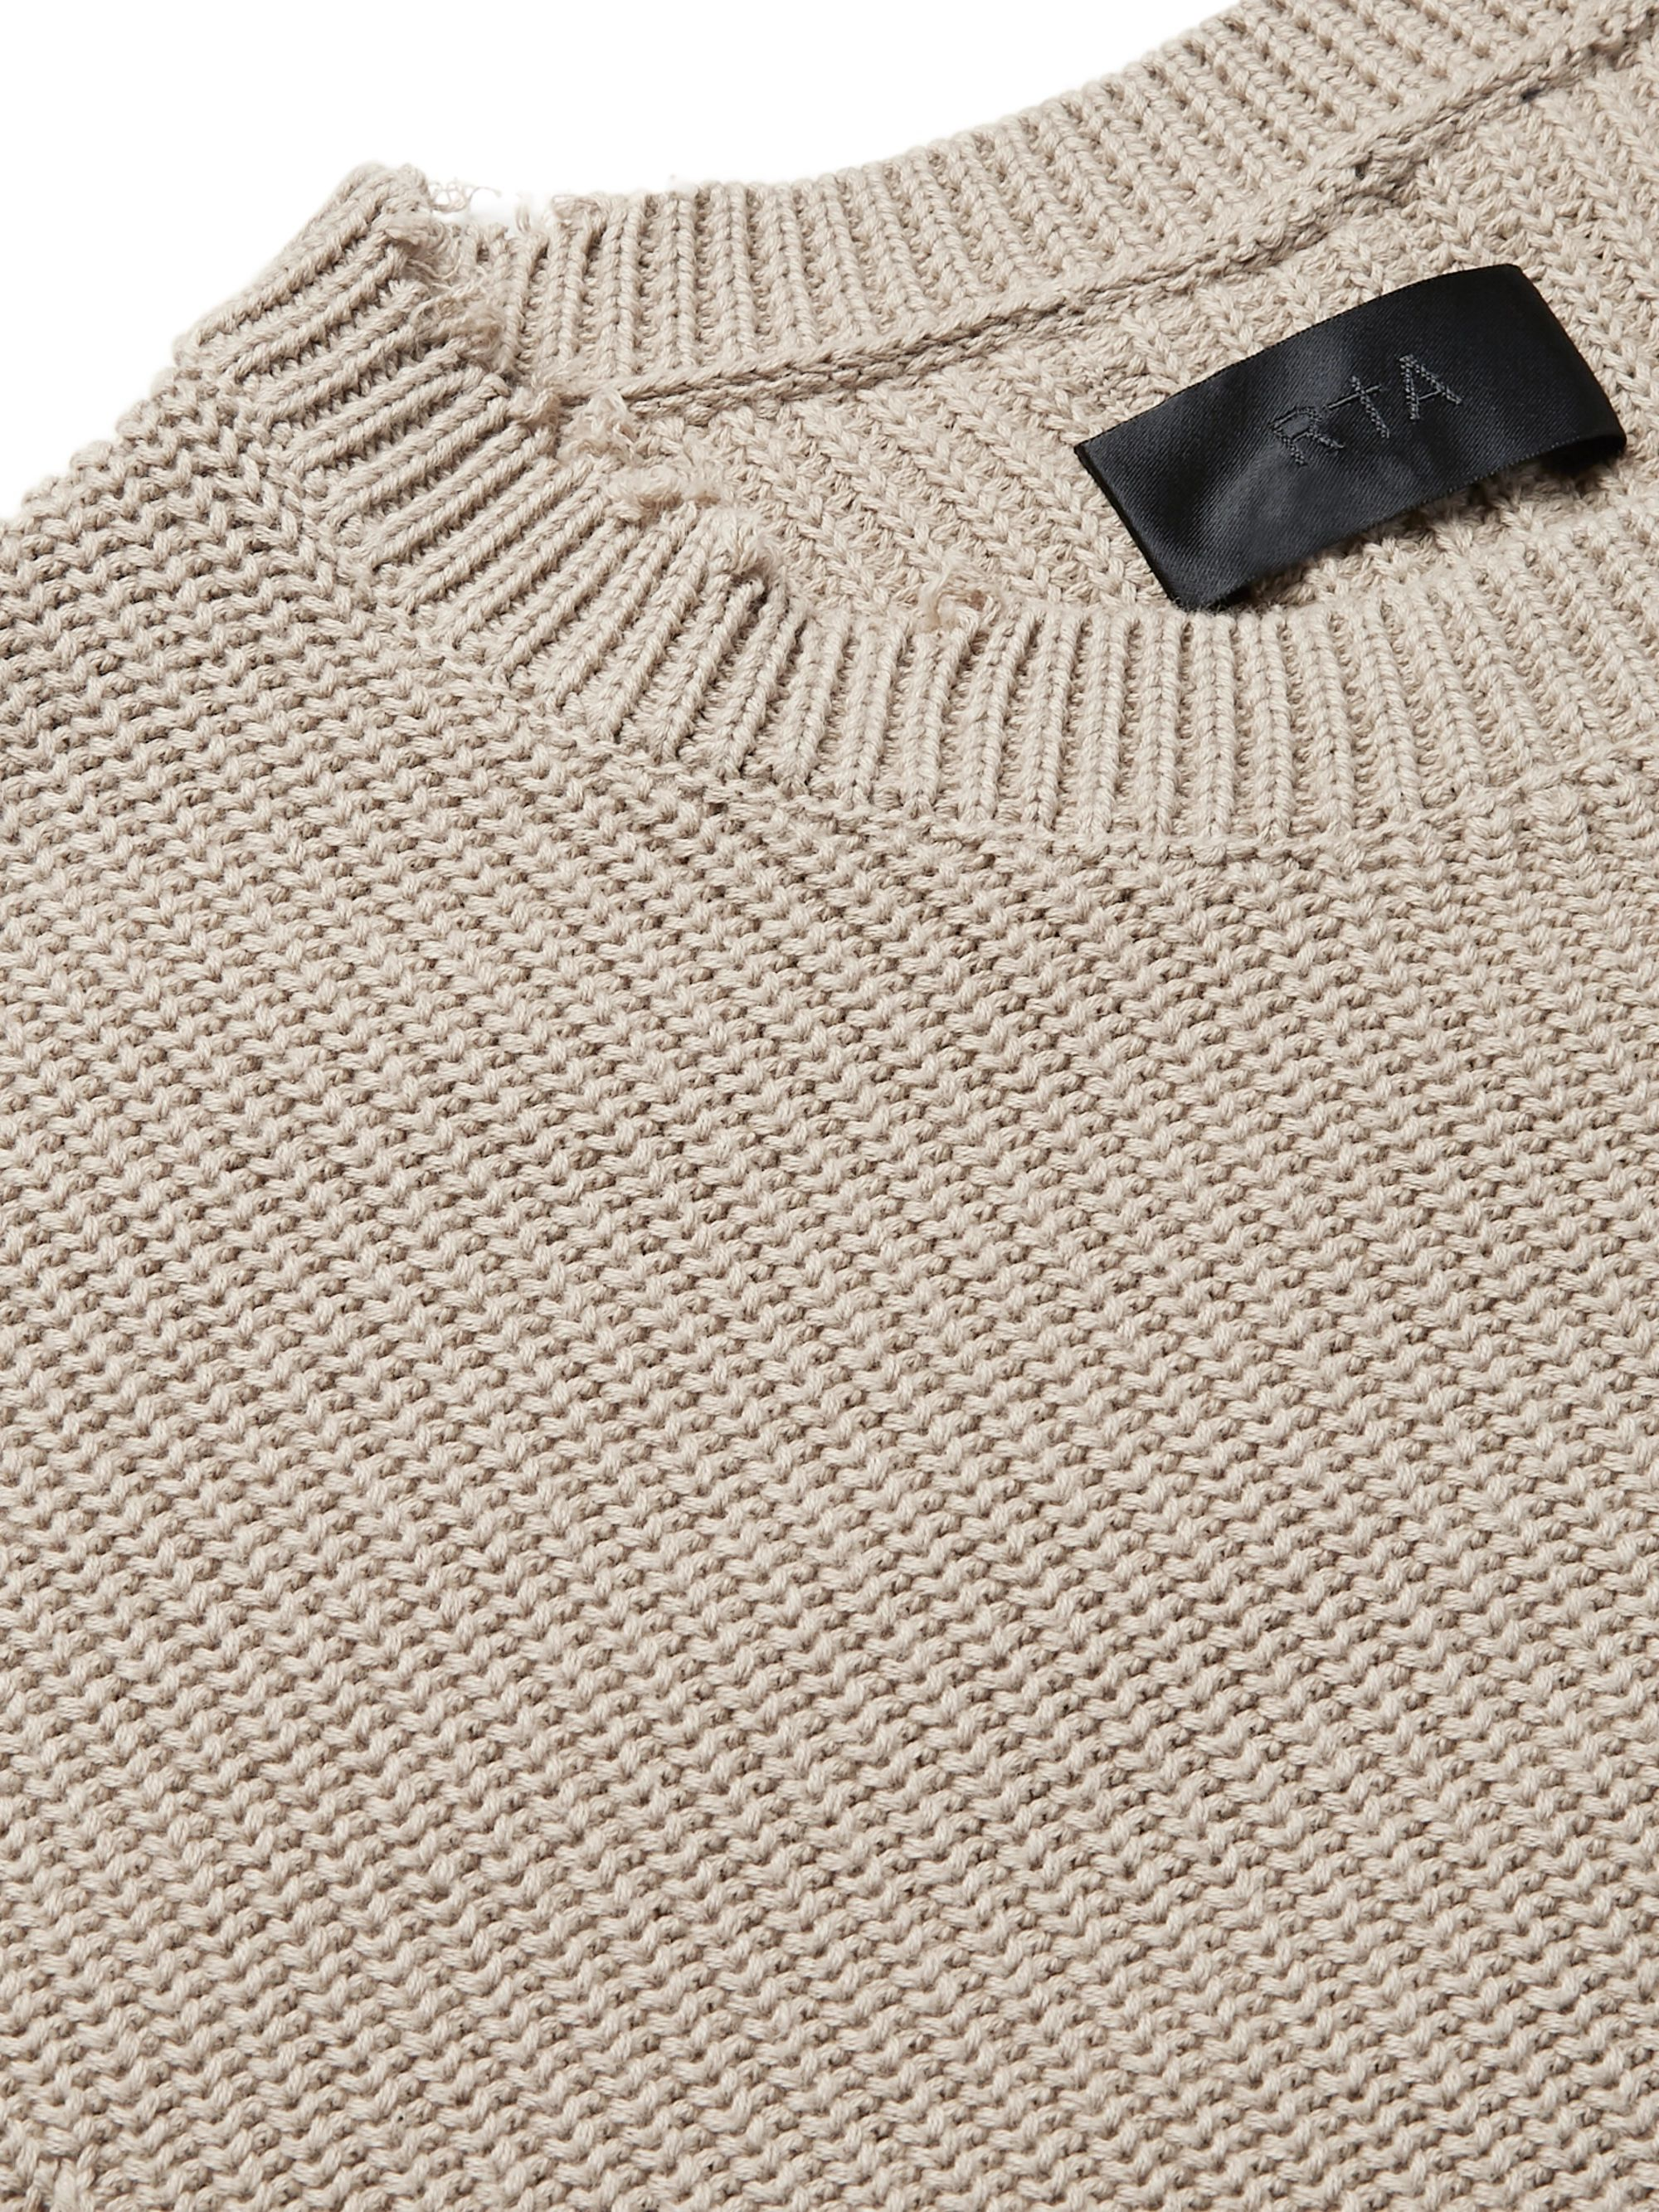 RtA Distressed Cotton Sweater